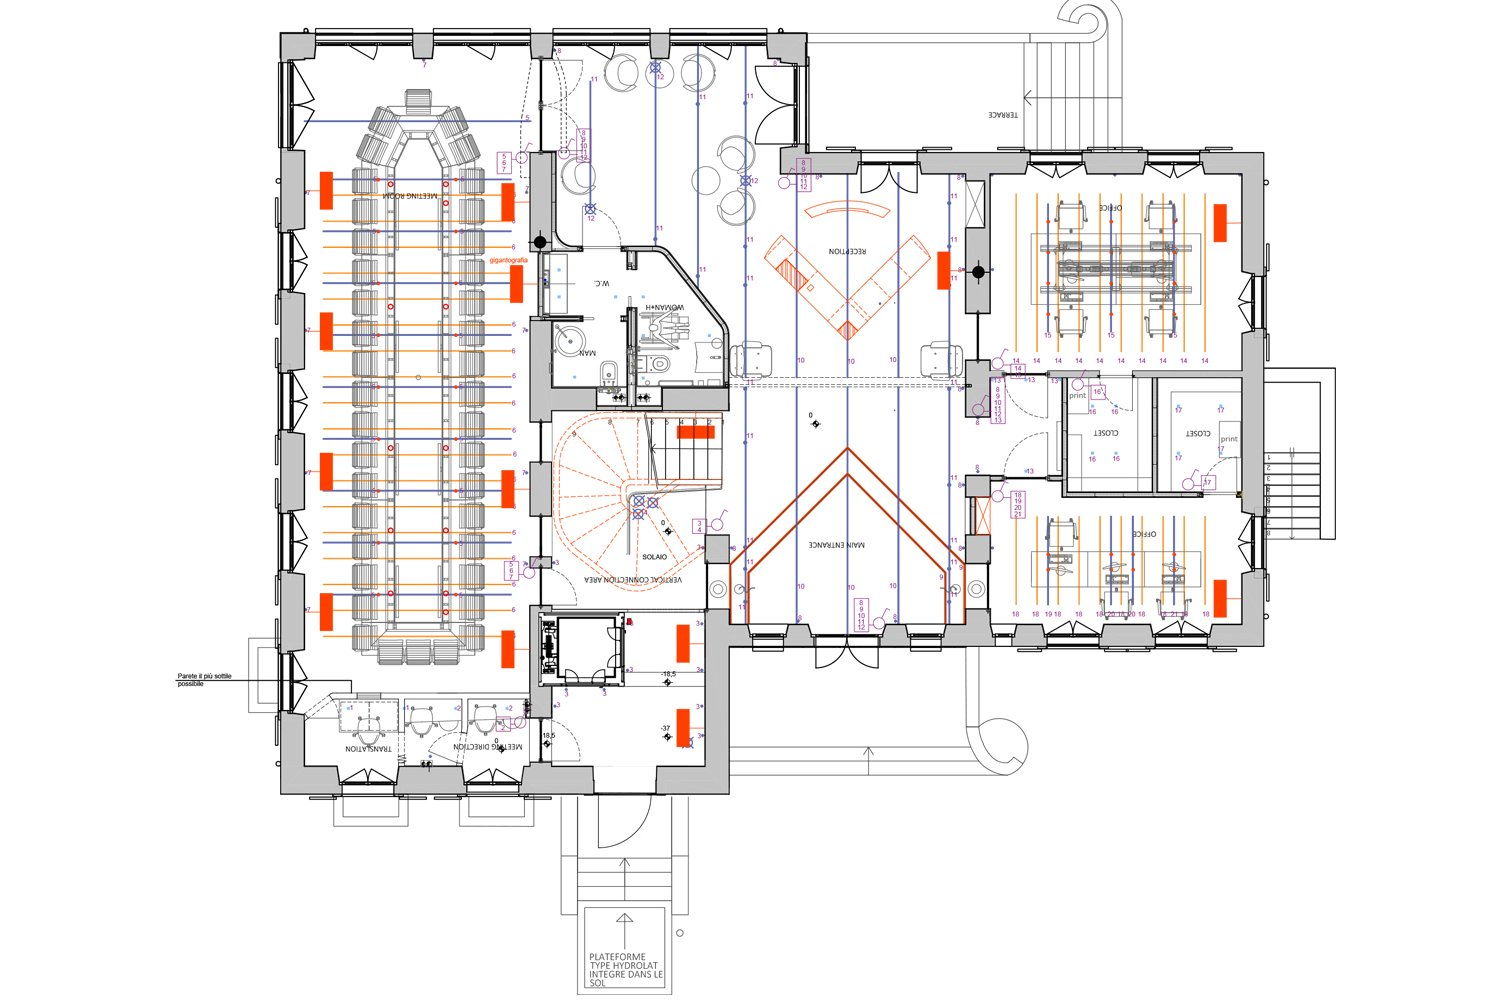 Ground Floor Lay Out enrico muscioni architect}